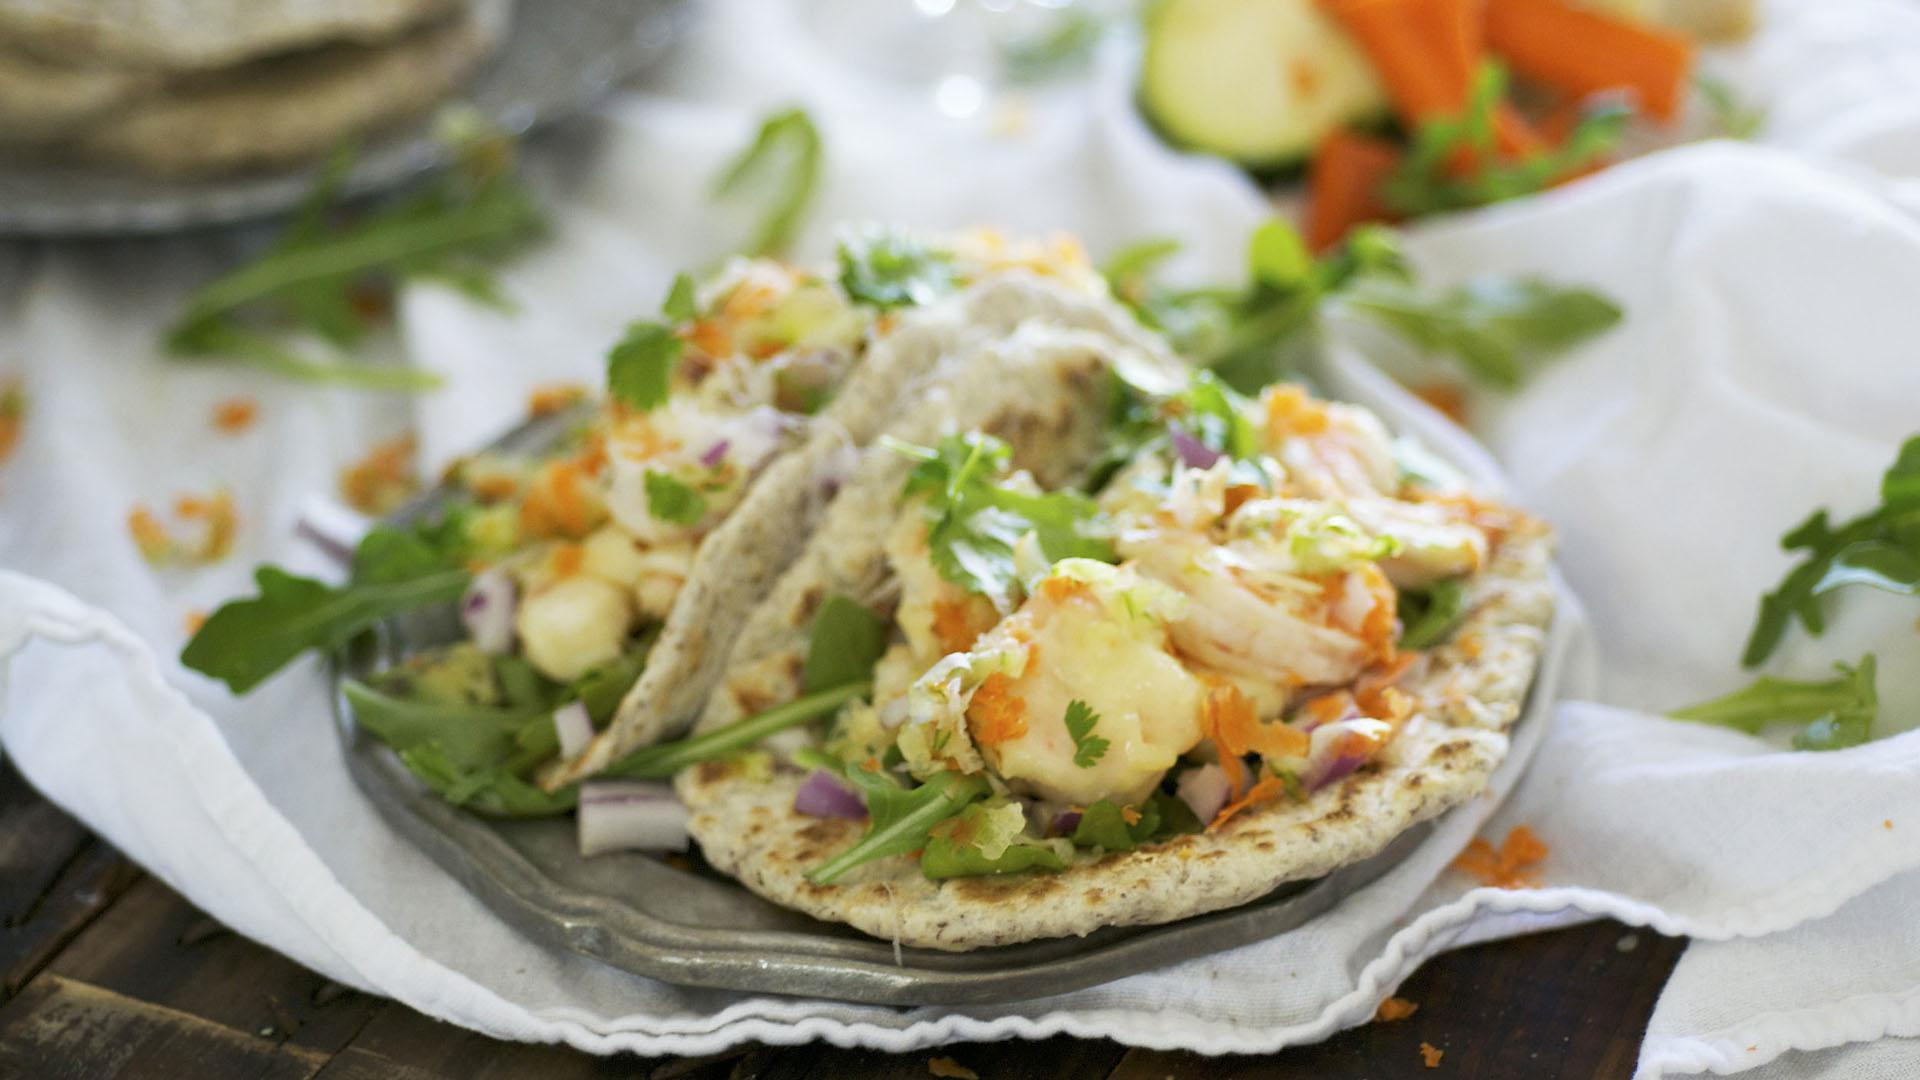 Tempura shrimp and veggie tacos in fluffy flax meal tortillas